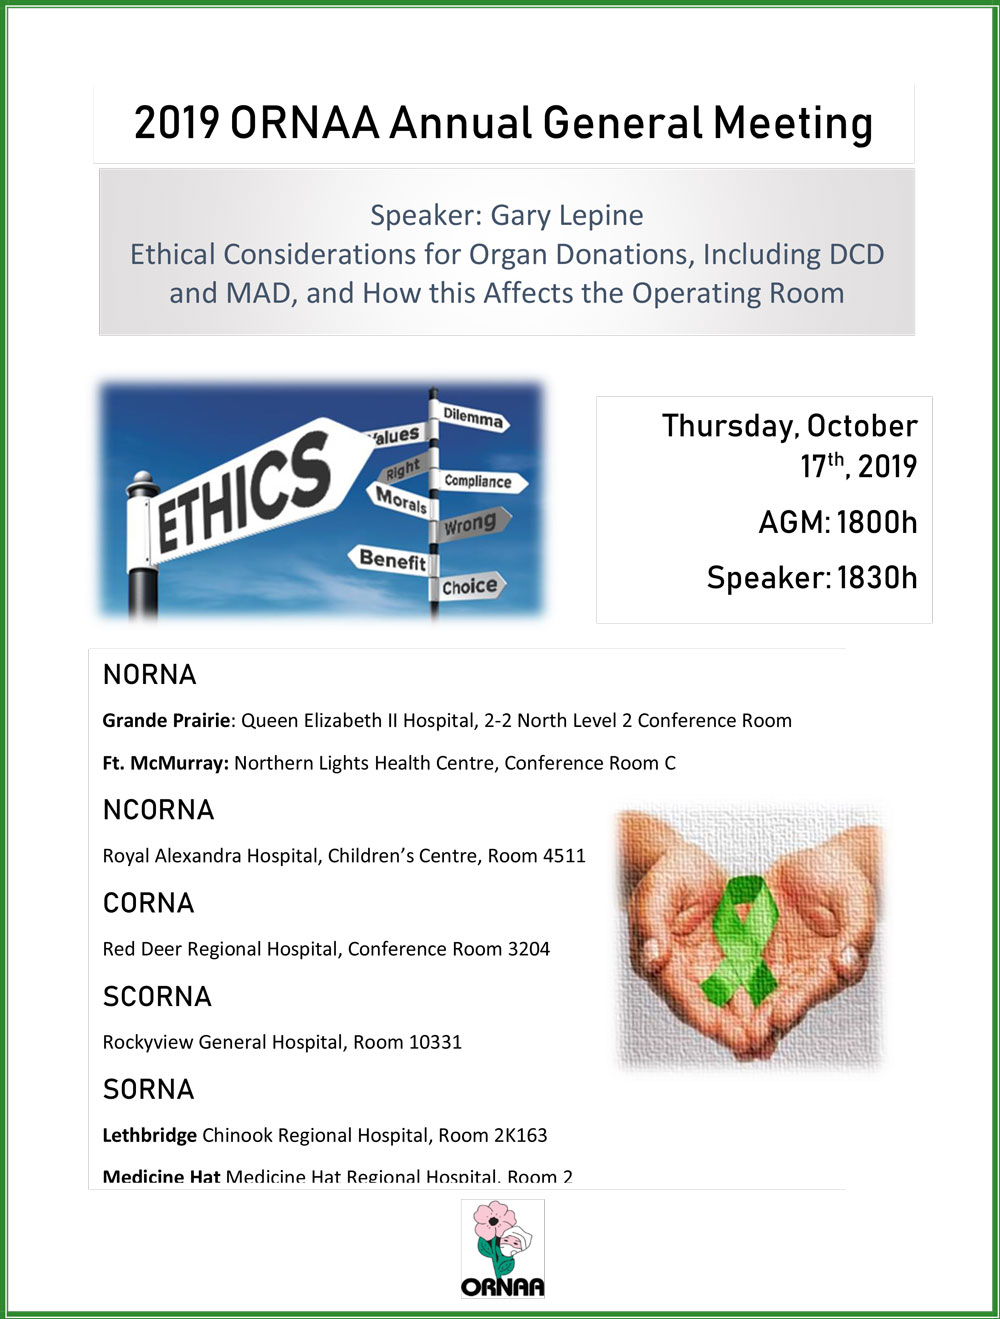 2019 ORNAA AGM, Thursday October 17